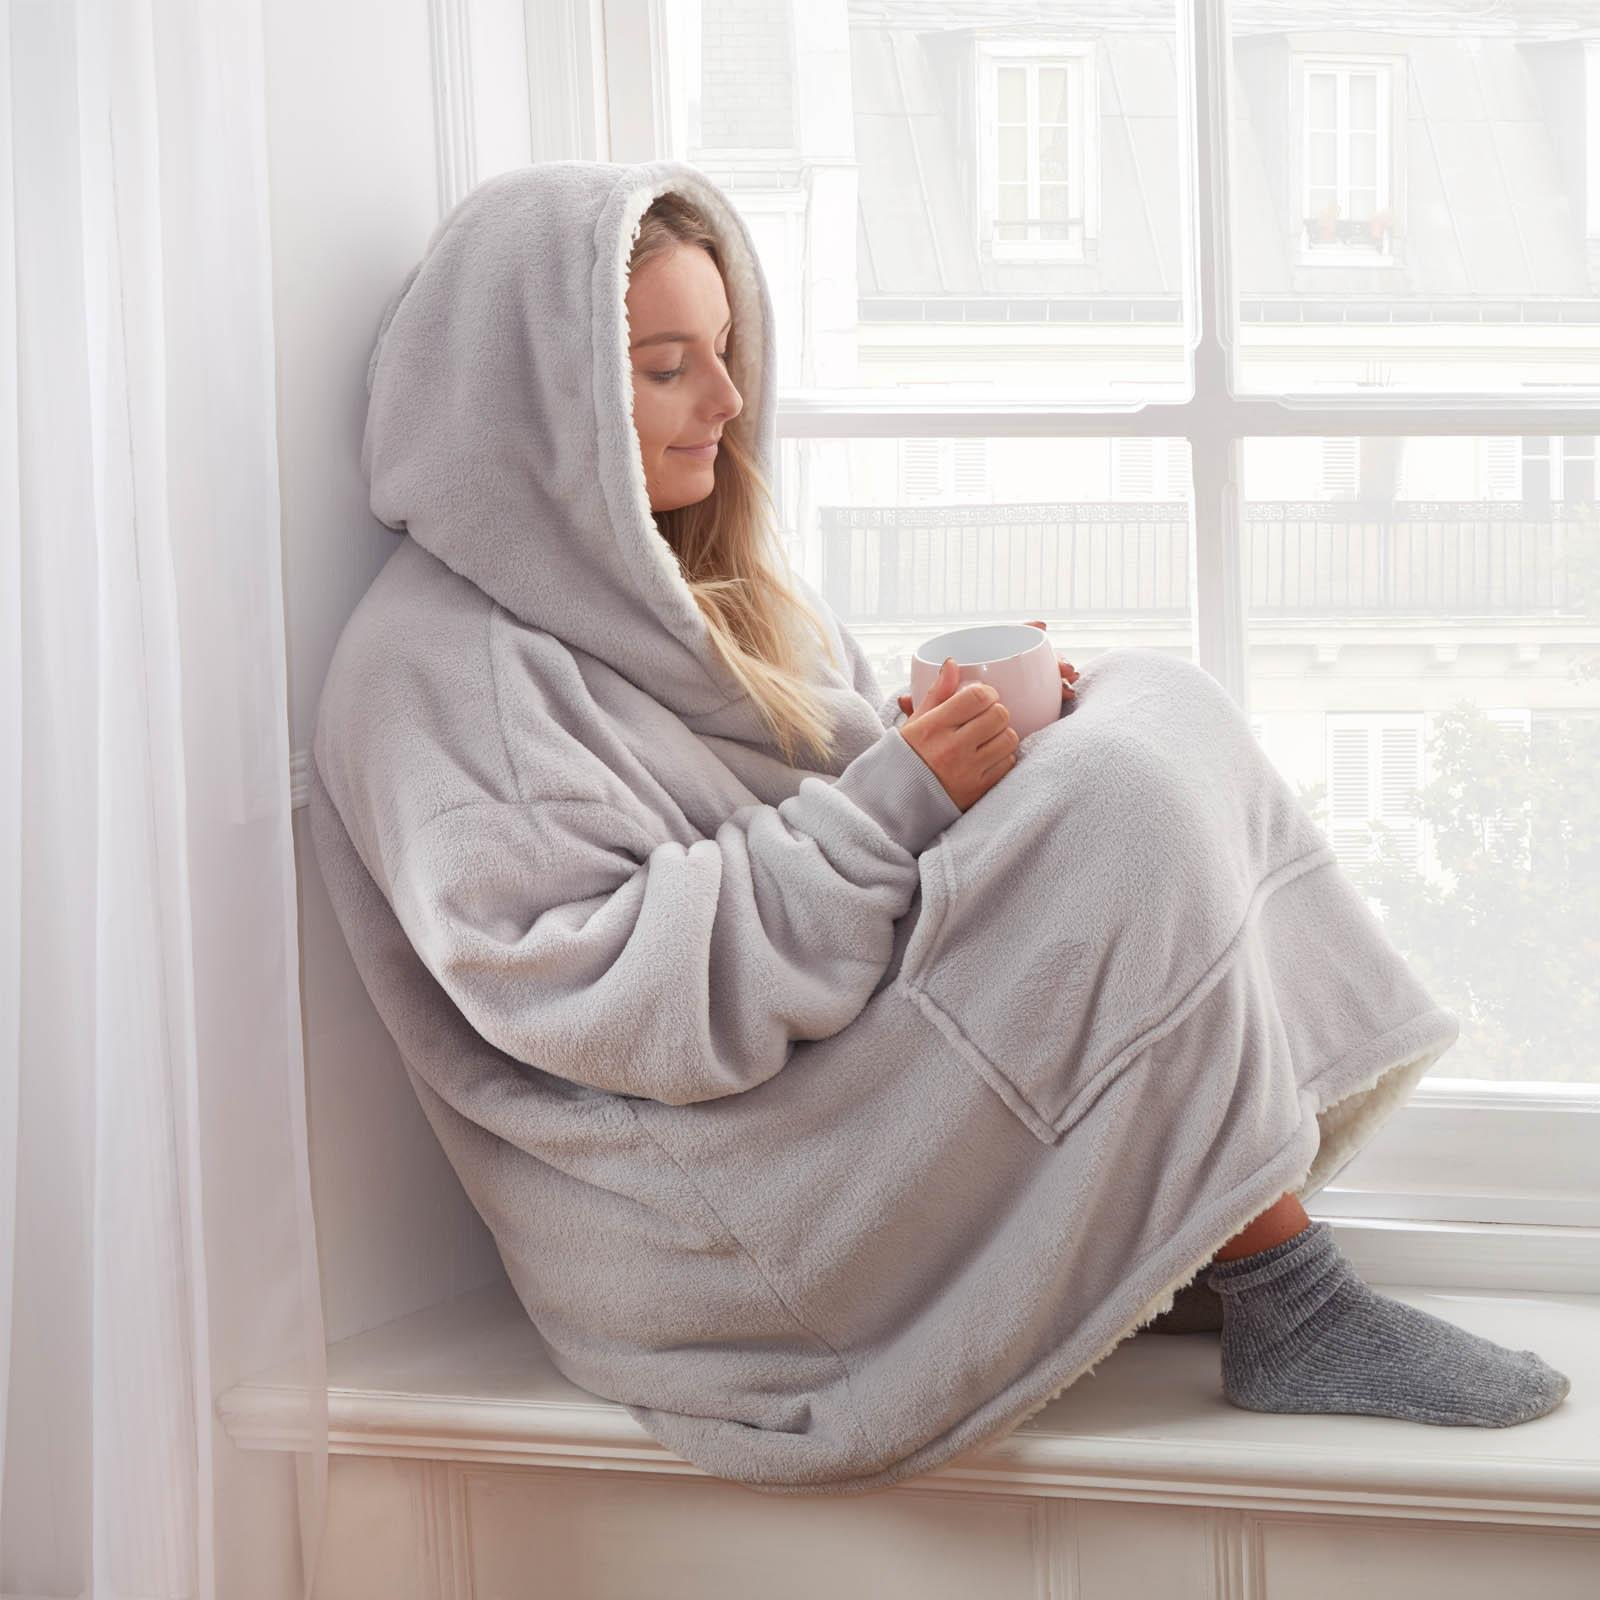 Sienna-Hoodie-Blanket-Oversized-Ultra-Plush-Sherpa-Giant-Big-Hooded-Sweatshirt thumbnail 21